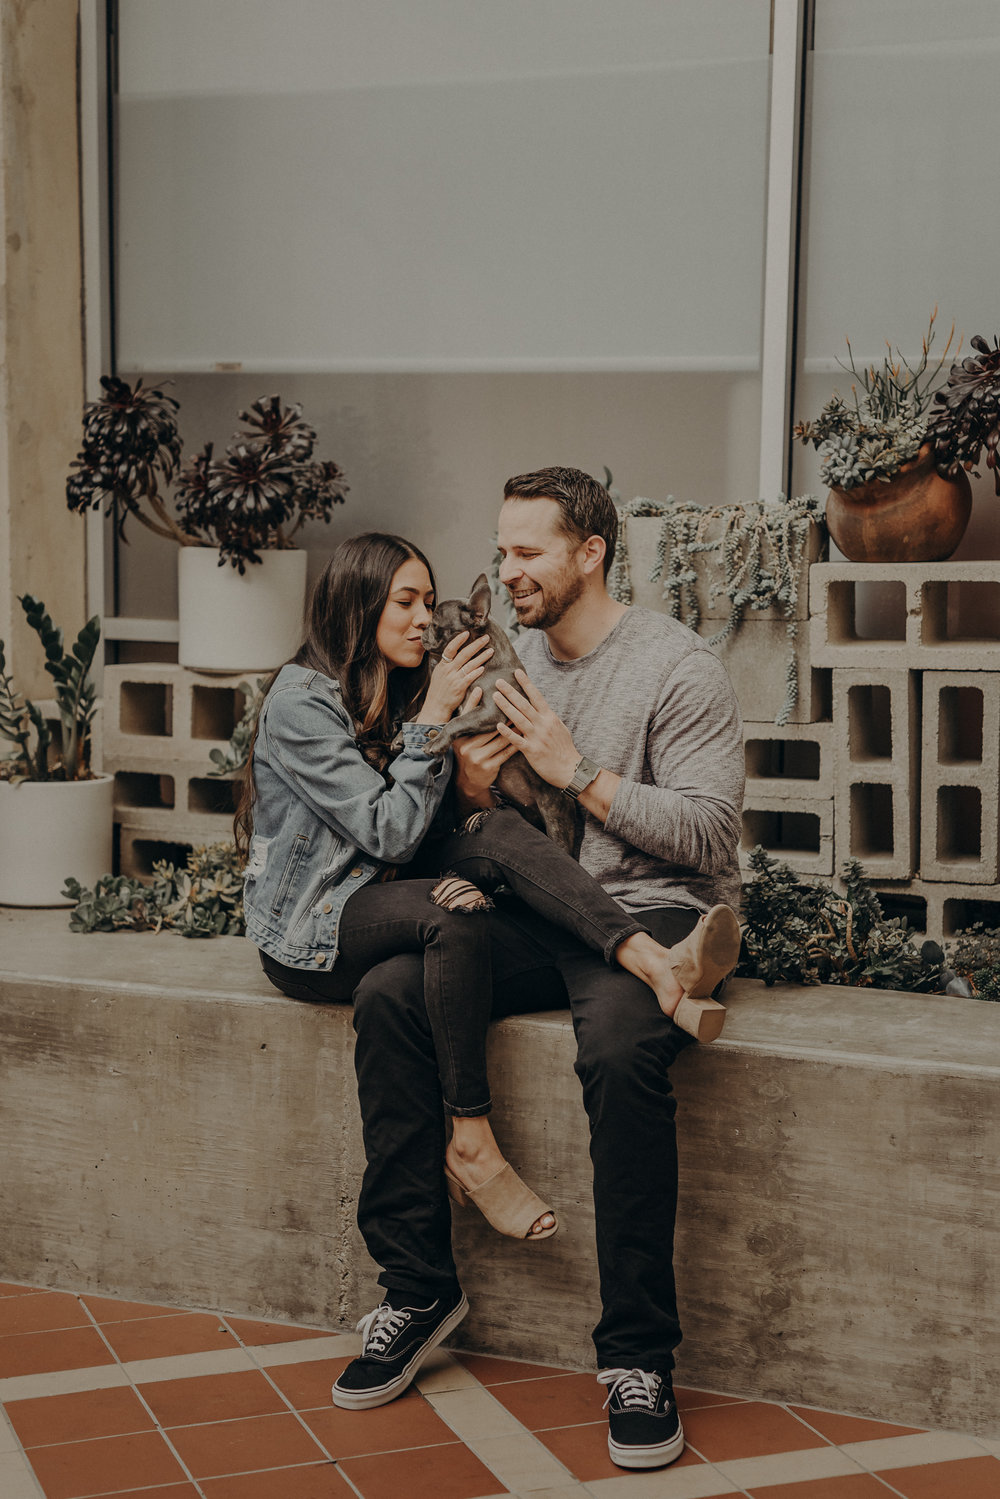 los ángeles wedding photographers - long beach engagement session - IsaiahAndTaylor.com